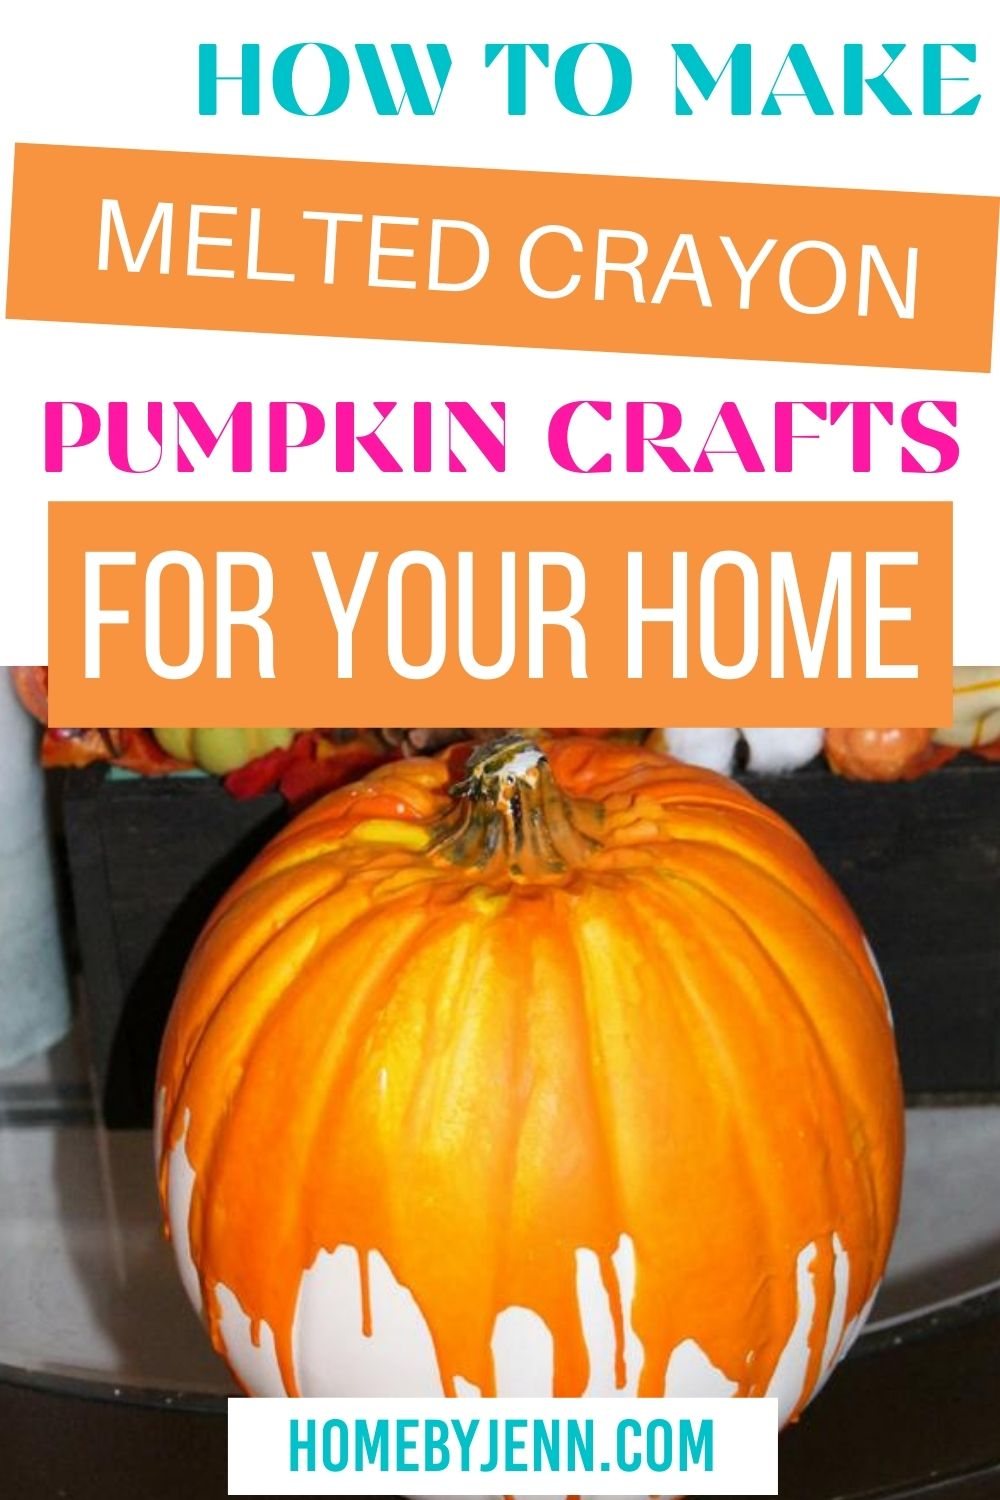 Learn how to make this easy melted crayon pumpkin craft. Put this pumpkin out on display in your home or even front porch to showcase your fall design. #easy #fall #pumpkin #pumpkincraft #crayons #melt #crayoncraft #pumpkincraft via @homebyjenn